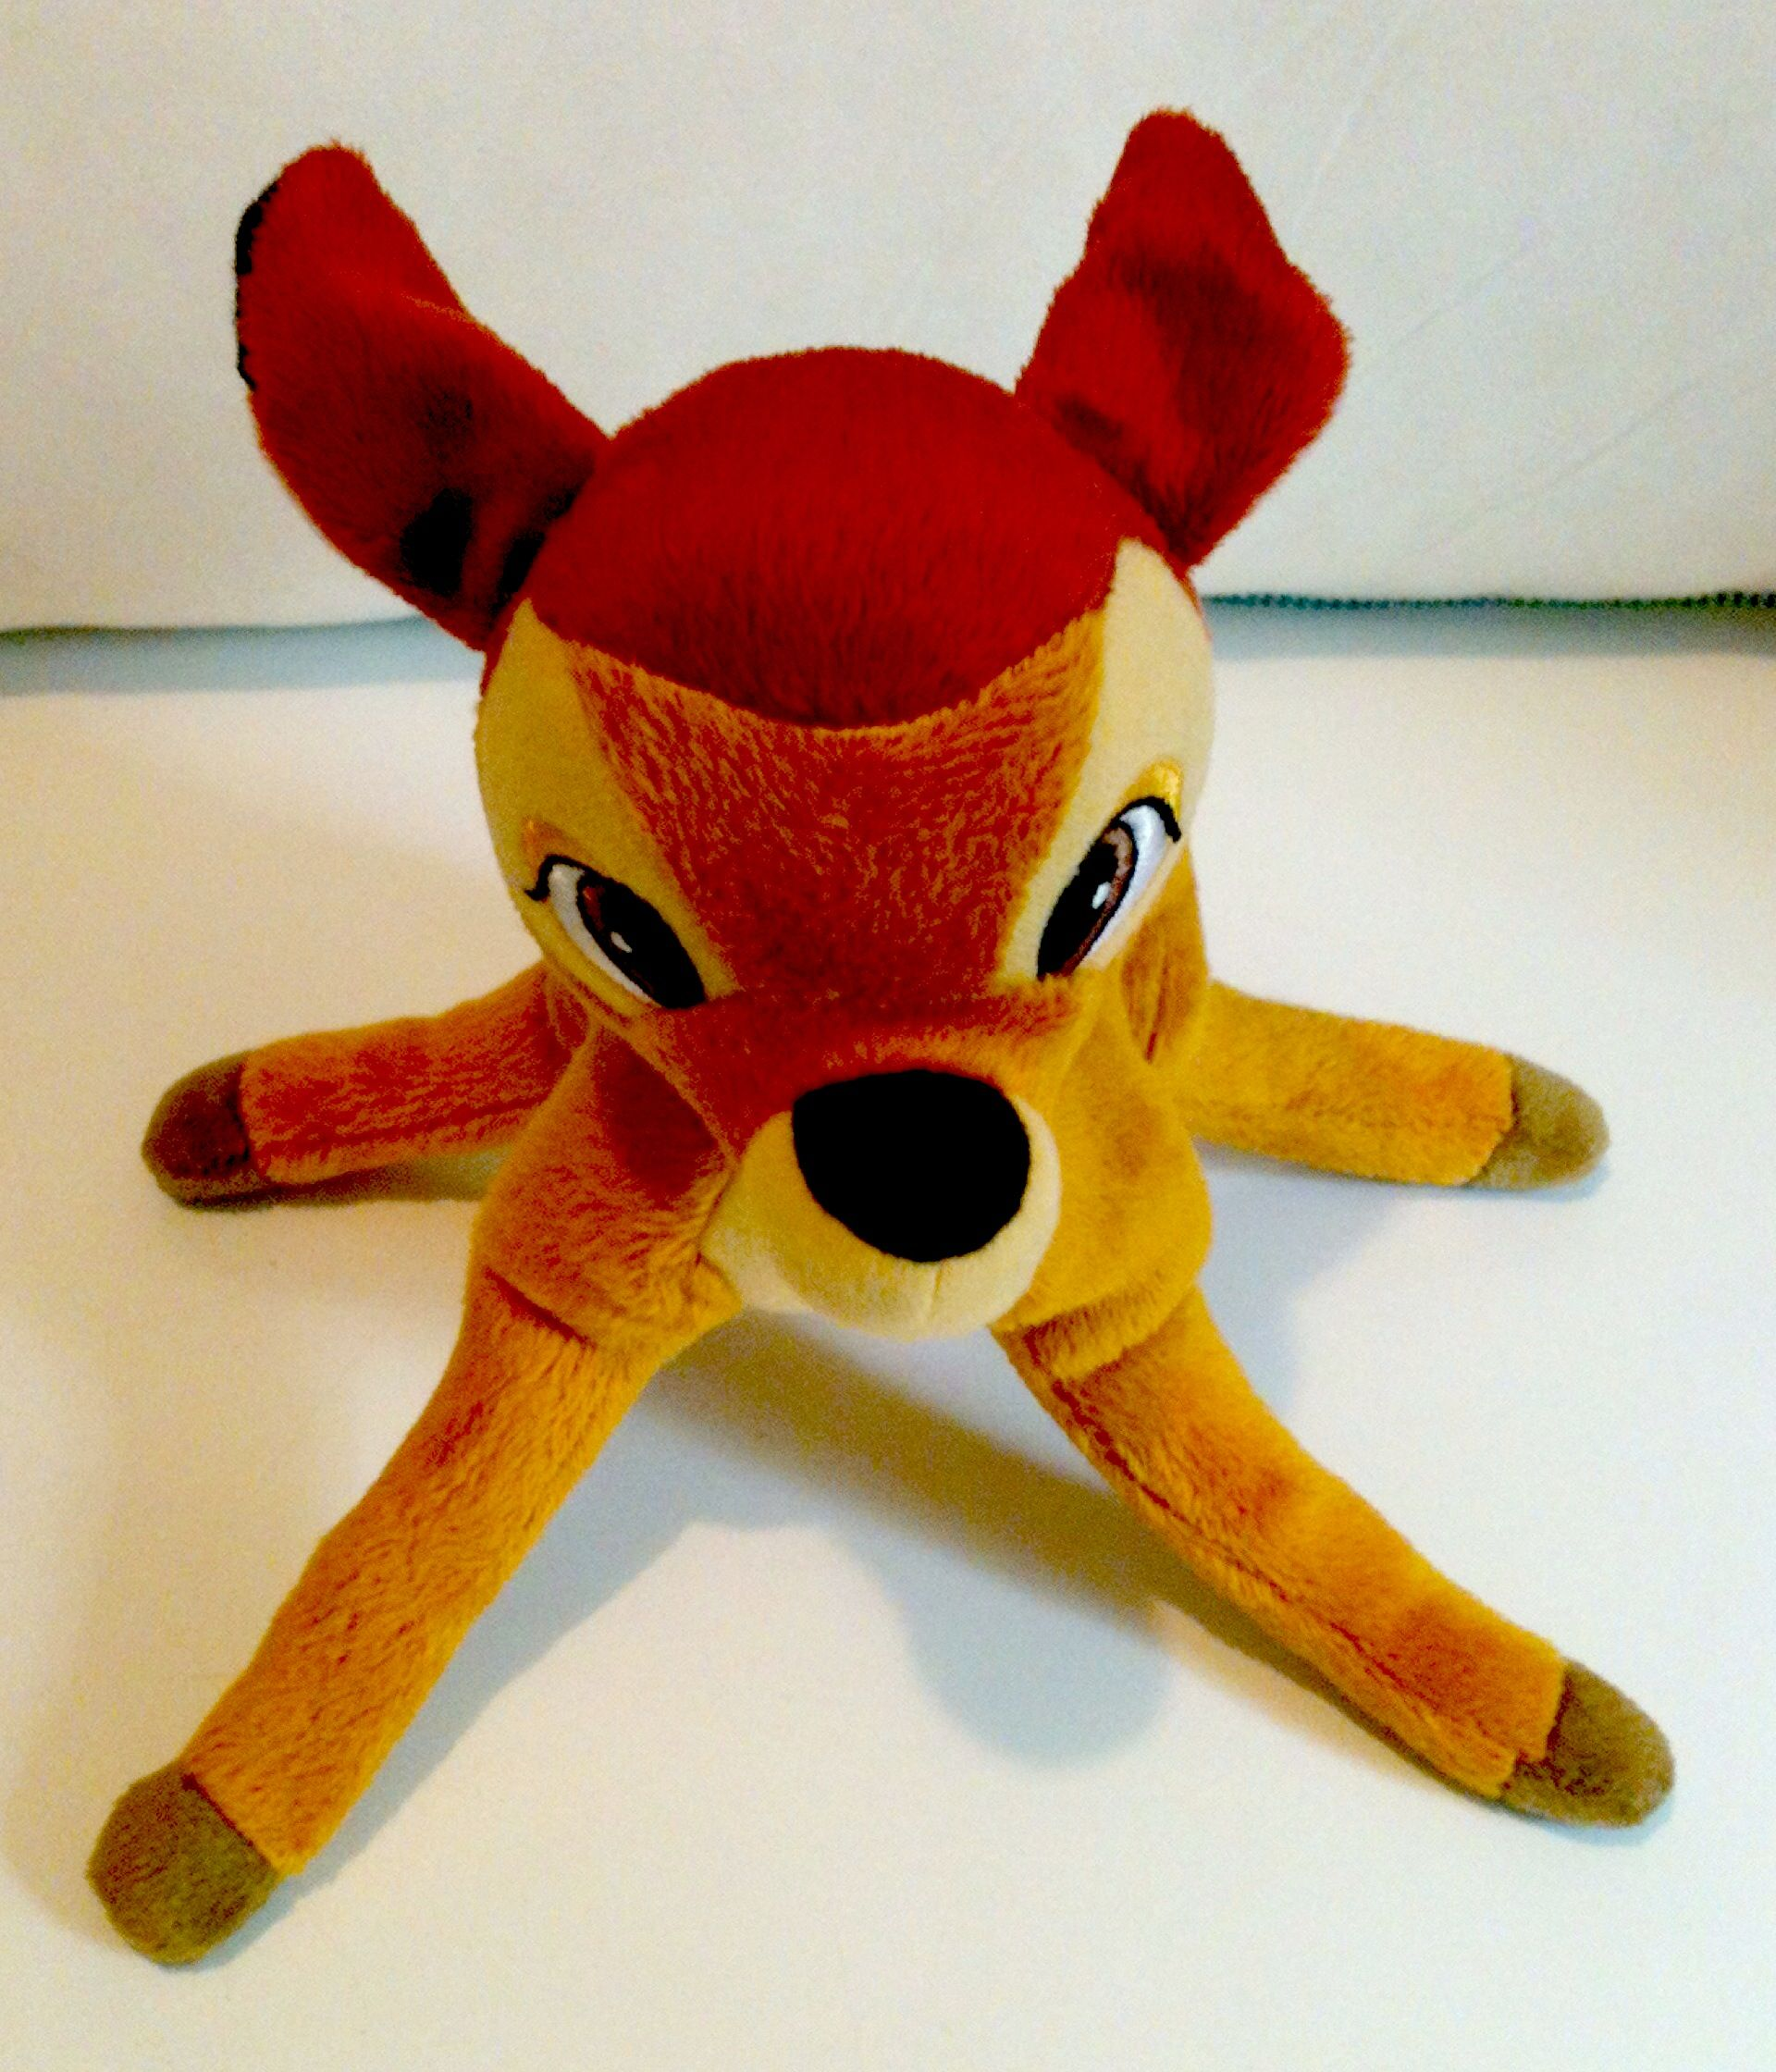 "Disney Bambi 8"" plush toy by Just Play. Still new on his"